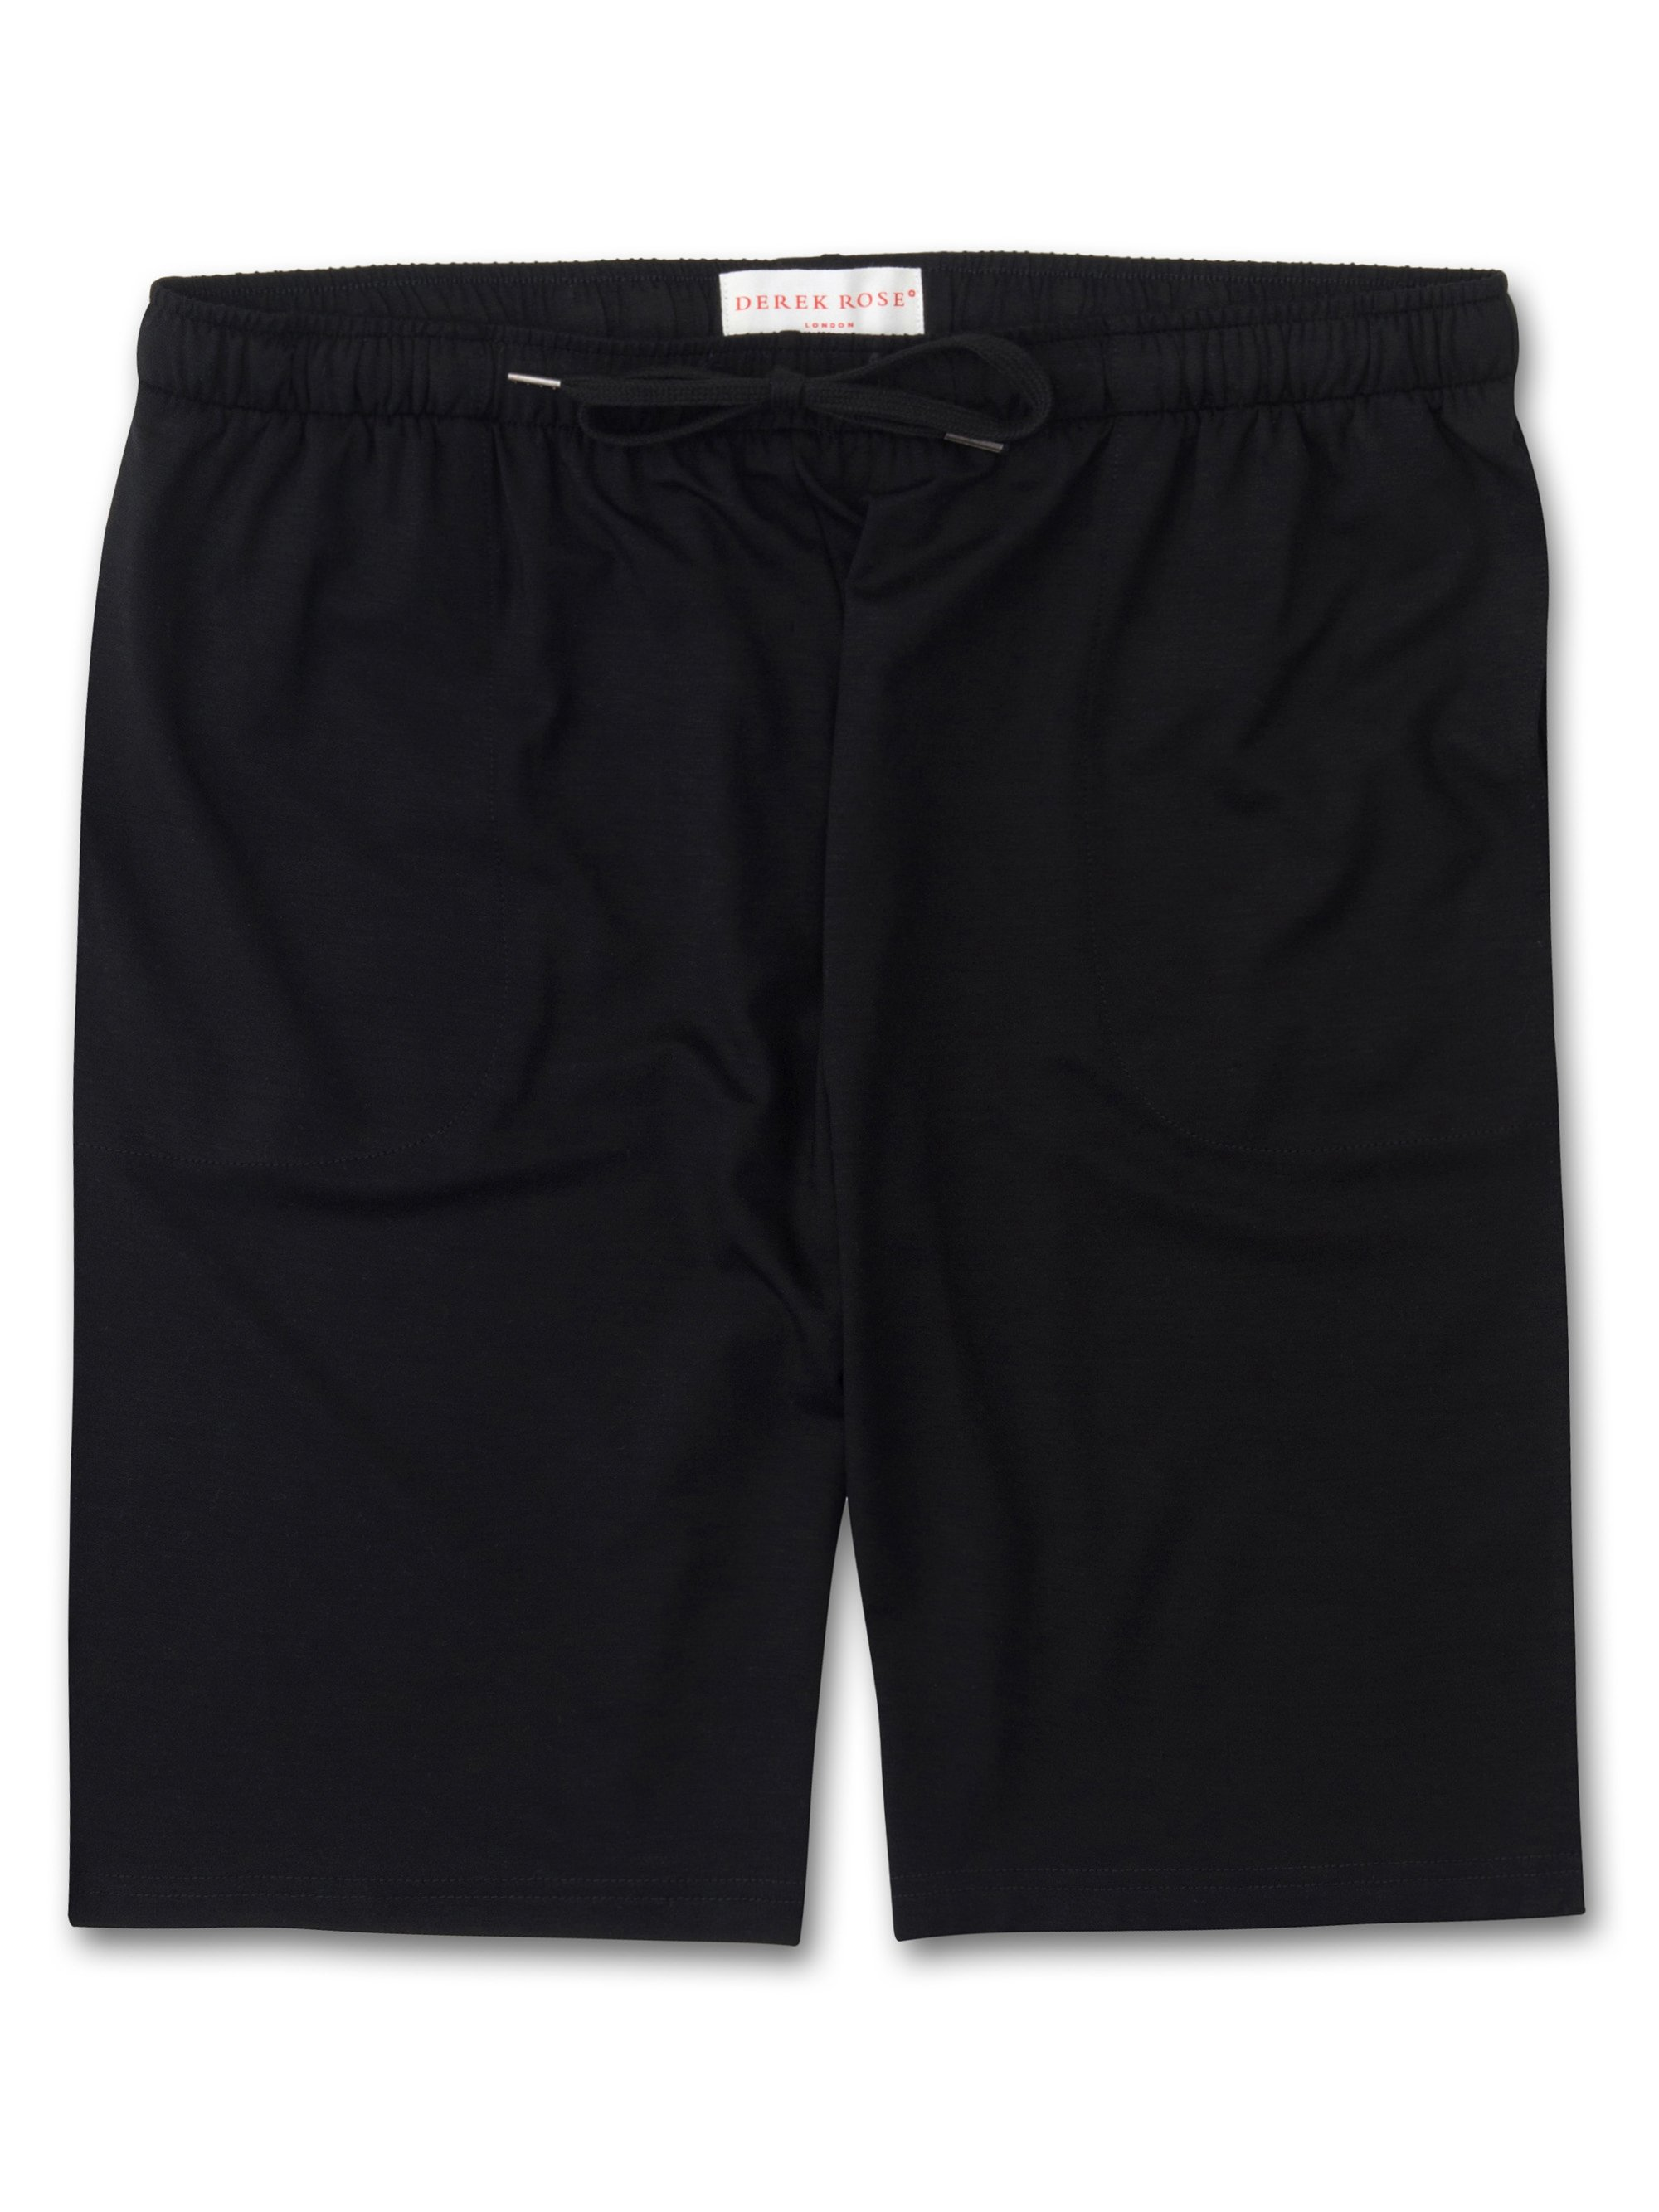 Men's Jersey Shorts Basel Micro Modal Stretch Black